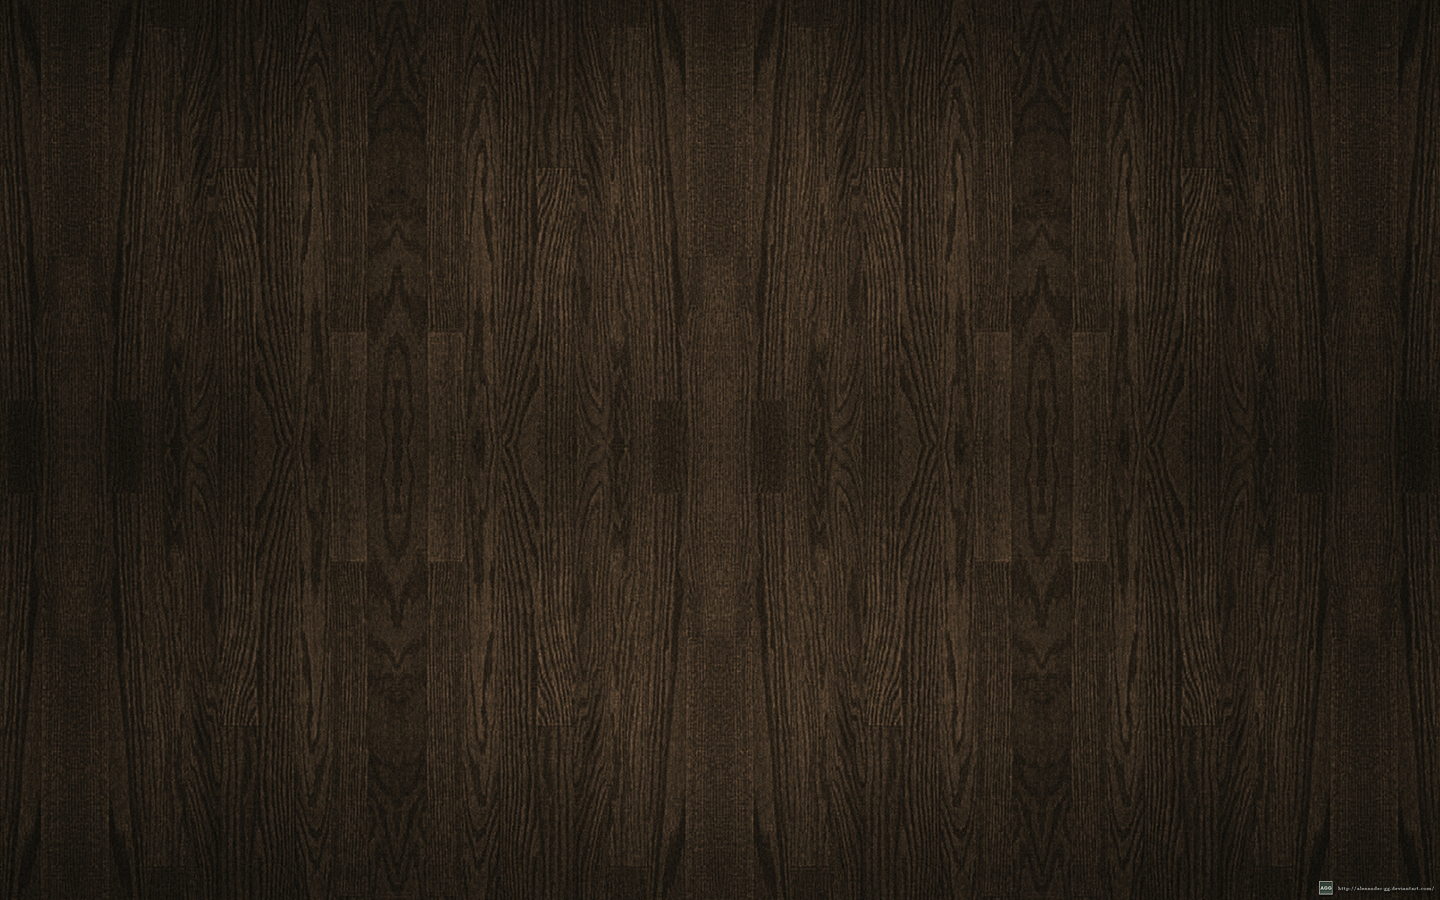 Wood 2 Brown 1440 215 900 171 Awesome Wallpapers